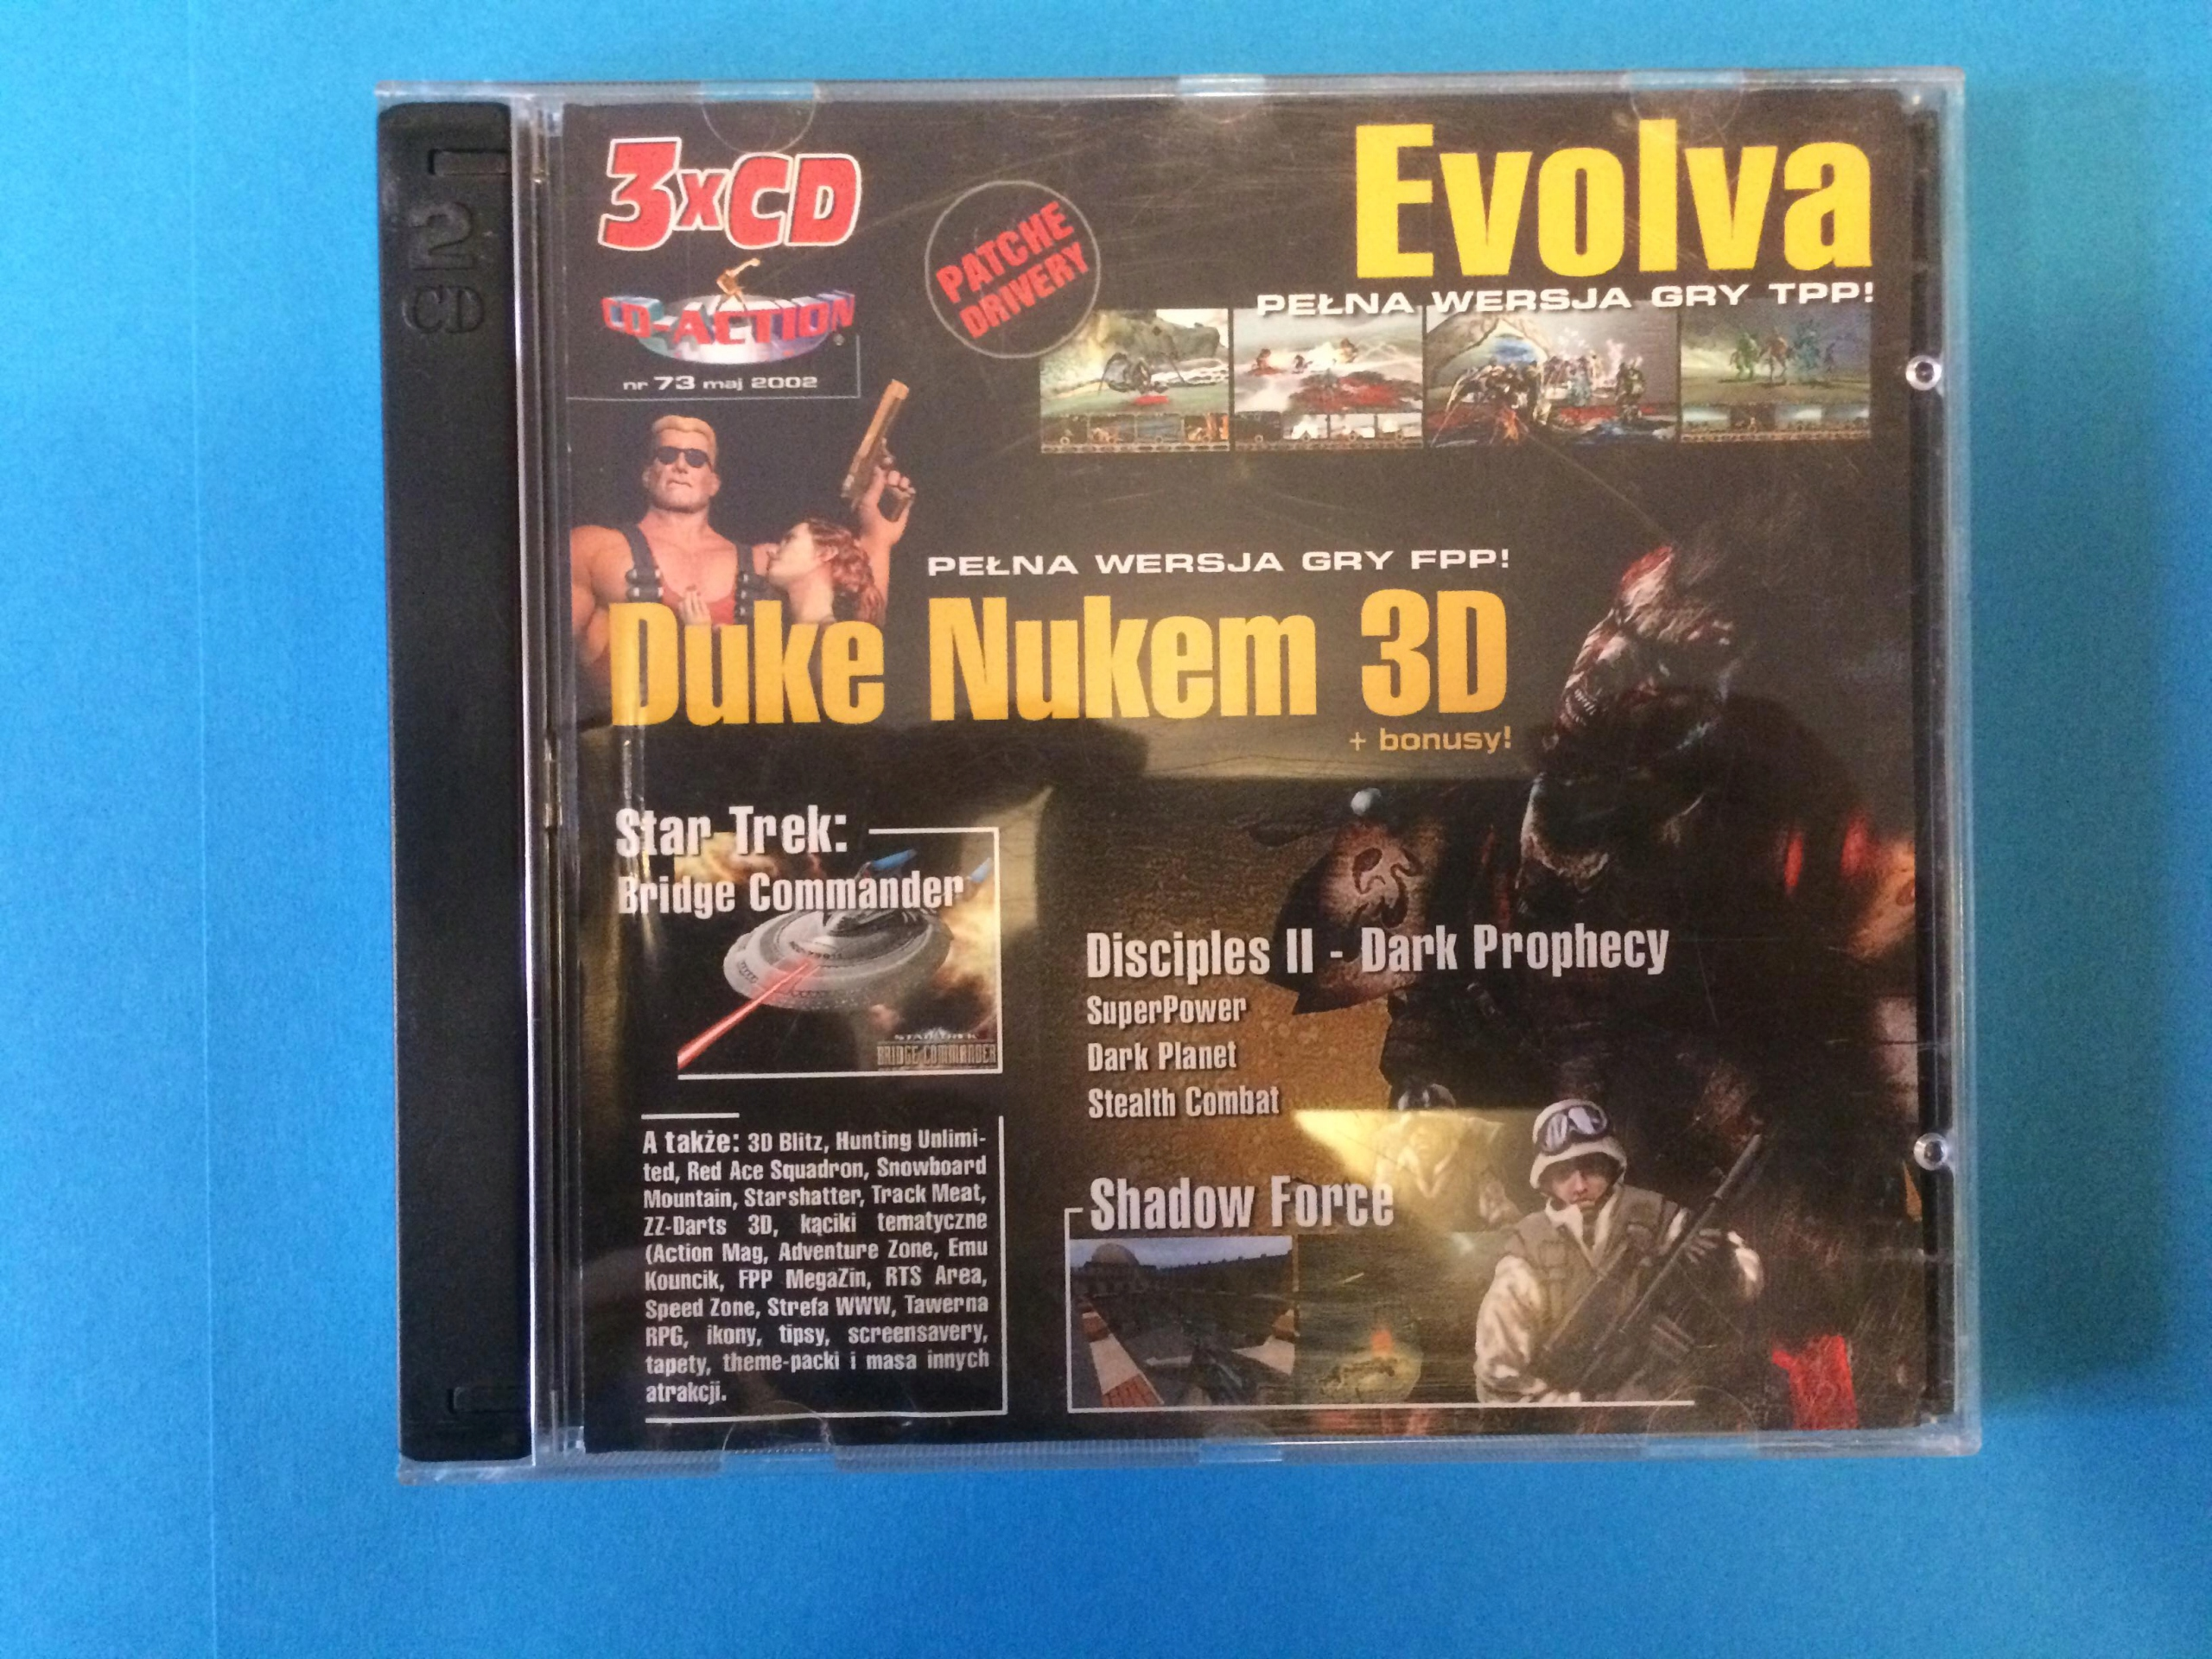 CD-ACTION 73: Duke Nukem 3D + Evolva